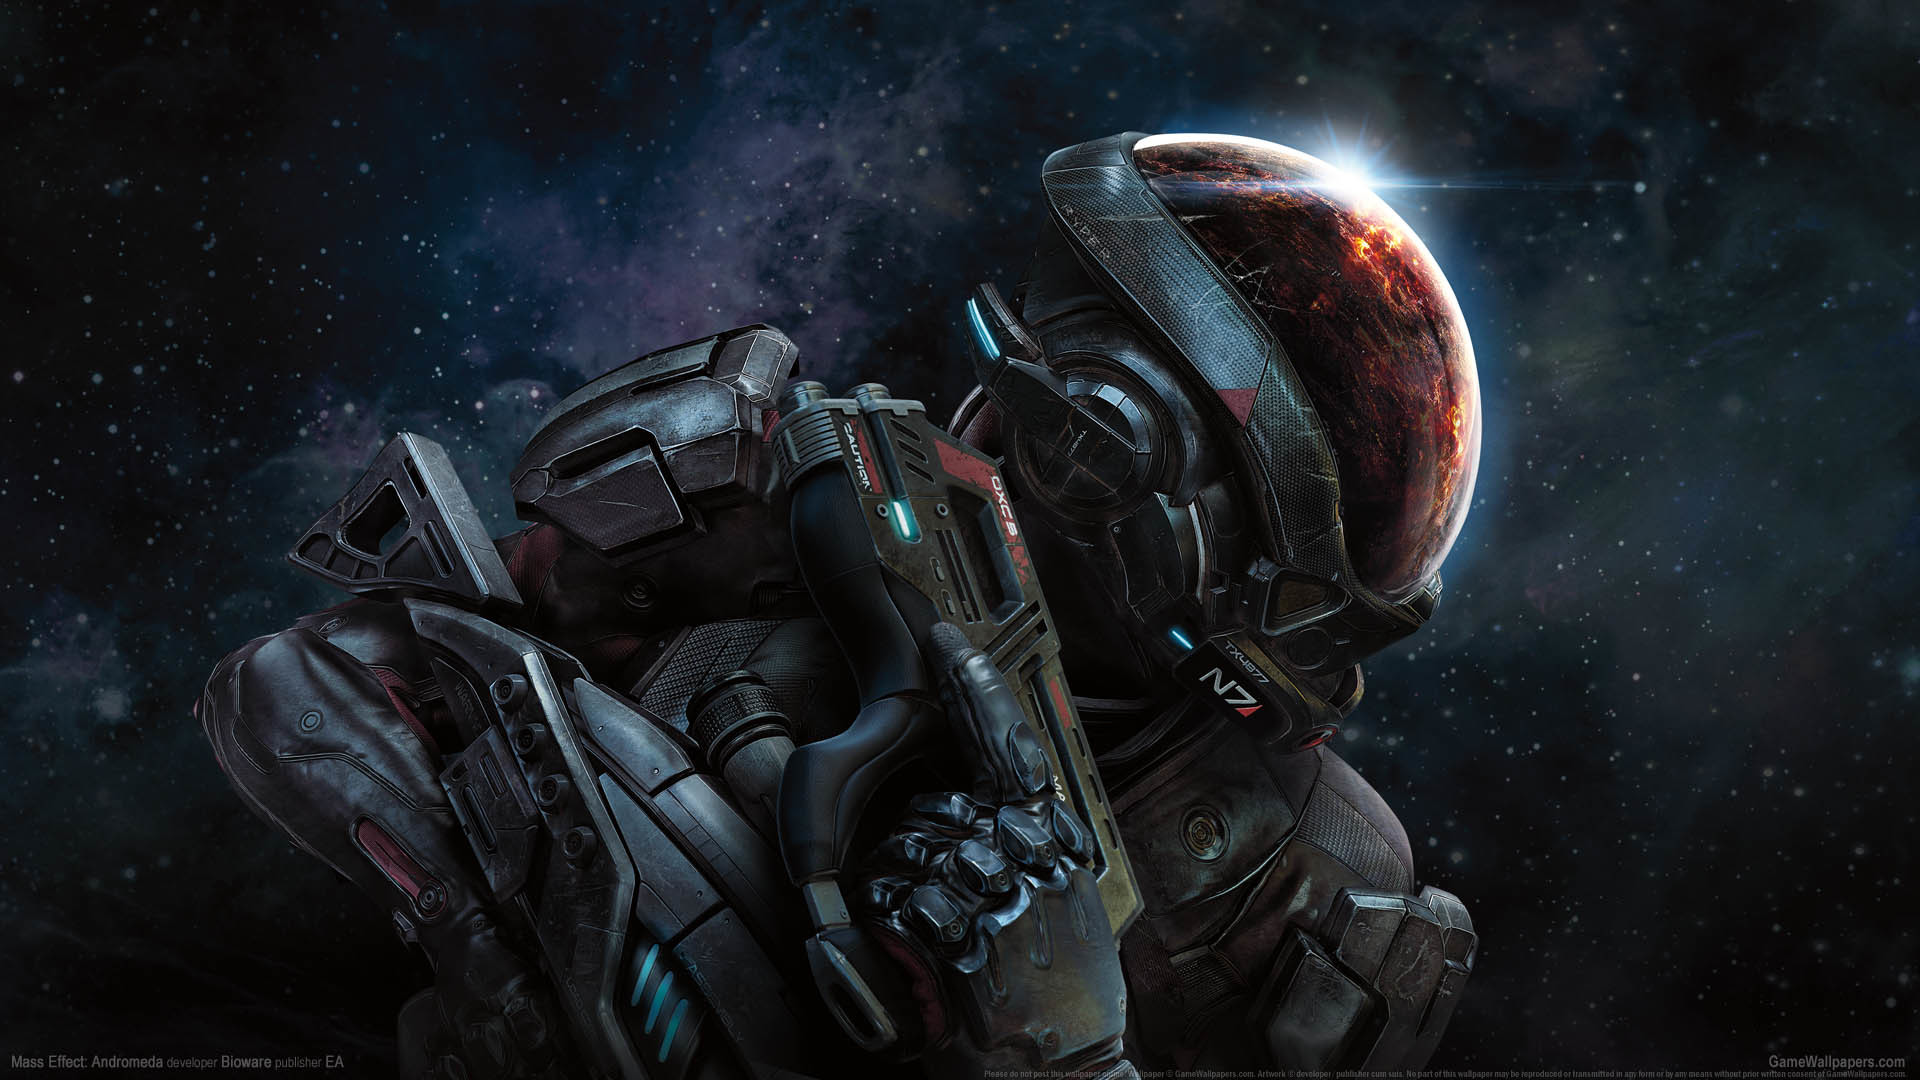 Mass Effect Andromeda Wallpapers: Mass Effect Space Wallpaper (74+ Images